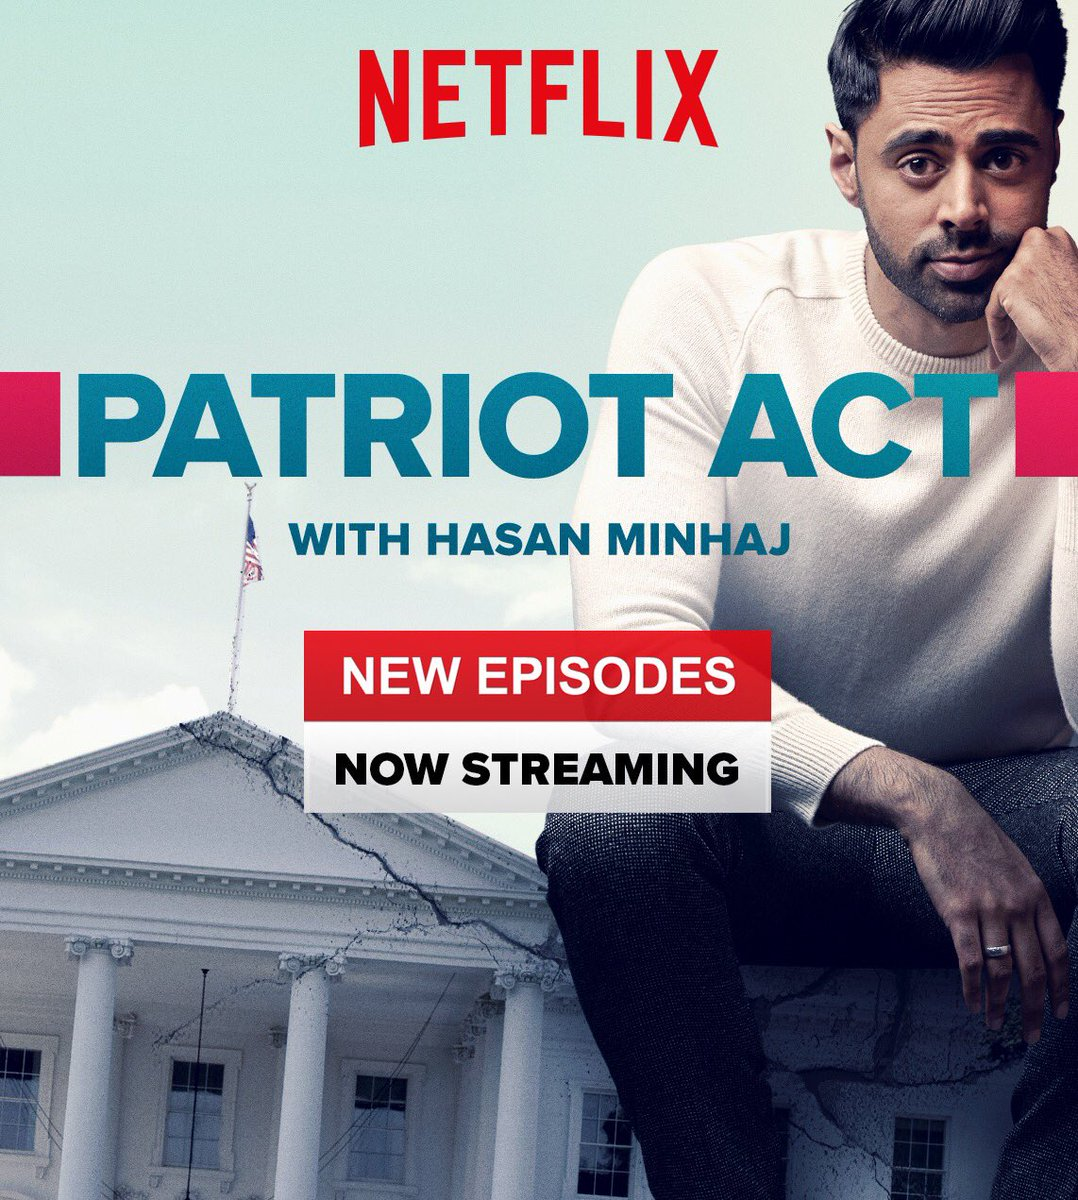 Check out @hasanminaj @netflix show. He's the truth https://t.co/7uIVfxrGdH